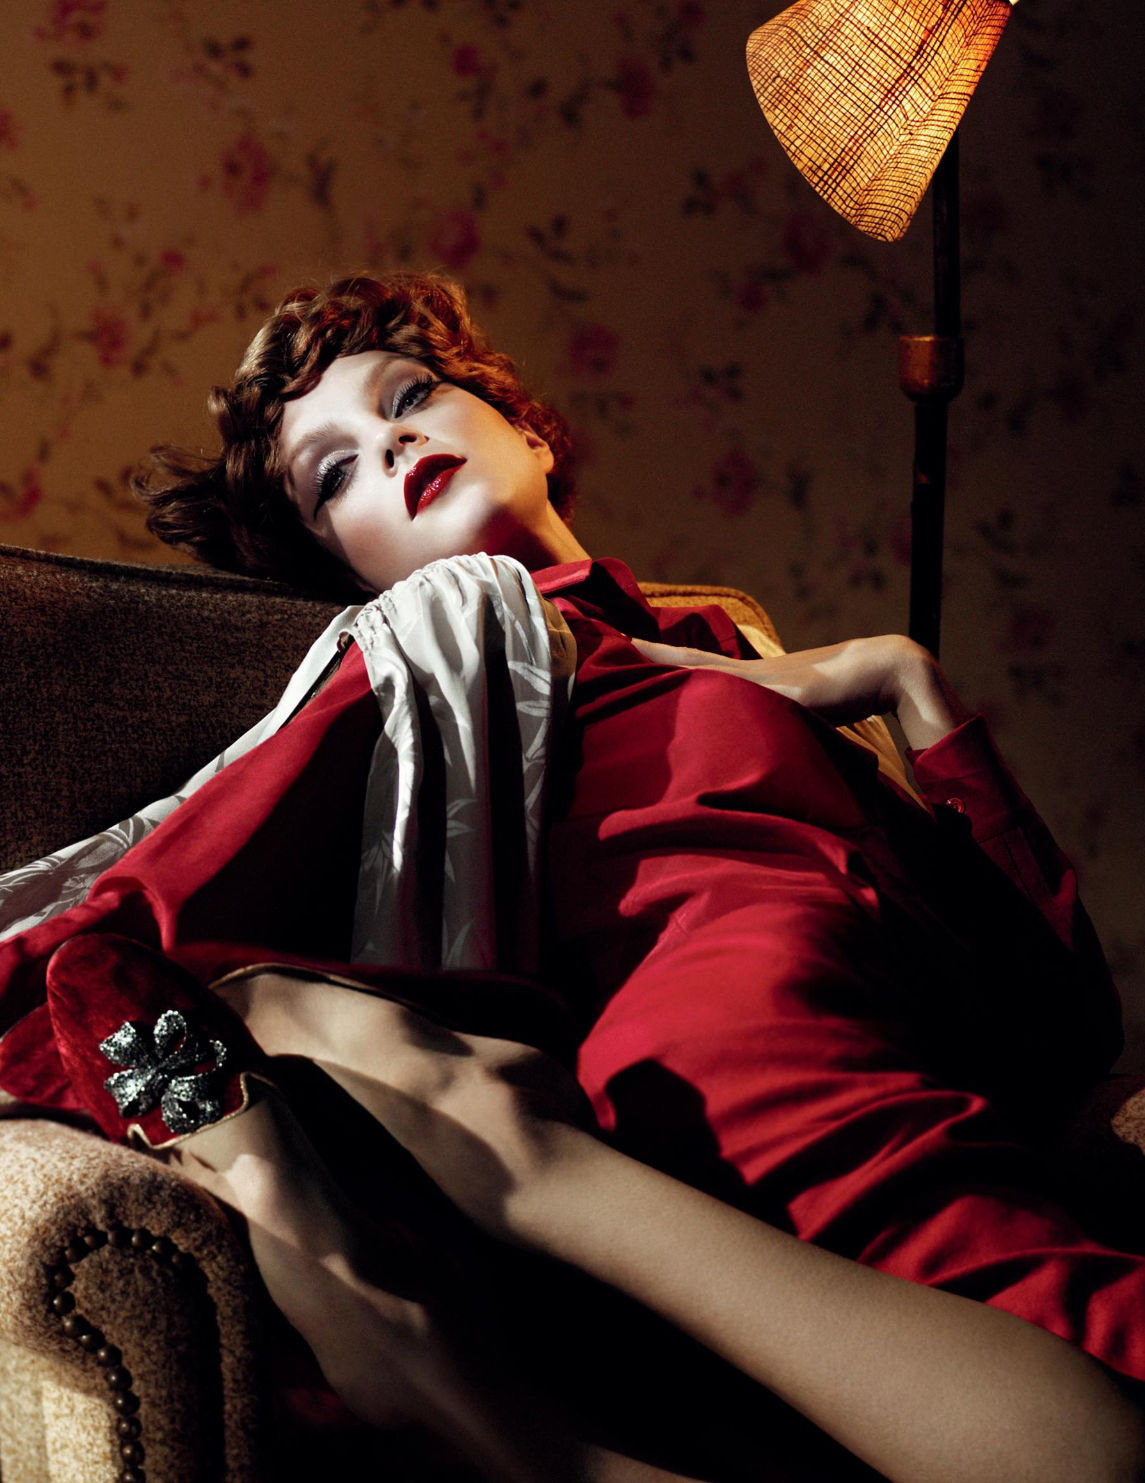 bohemea:  Jessica Stam: Long Day's Journey Into Night - W by Willy Vanderperre, January 2013